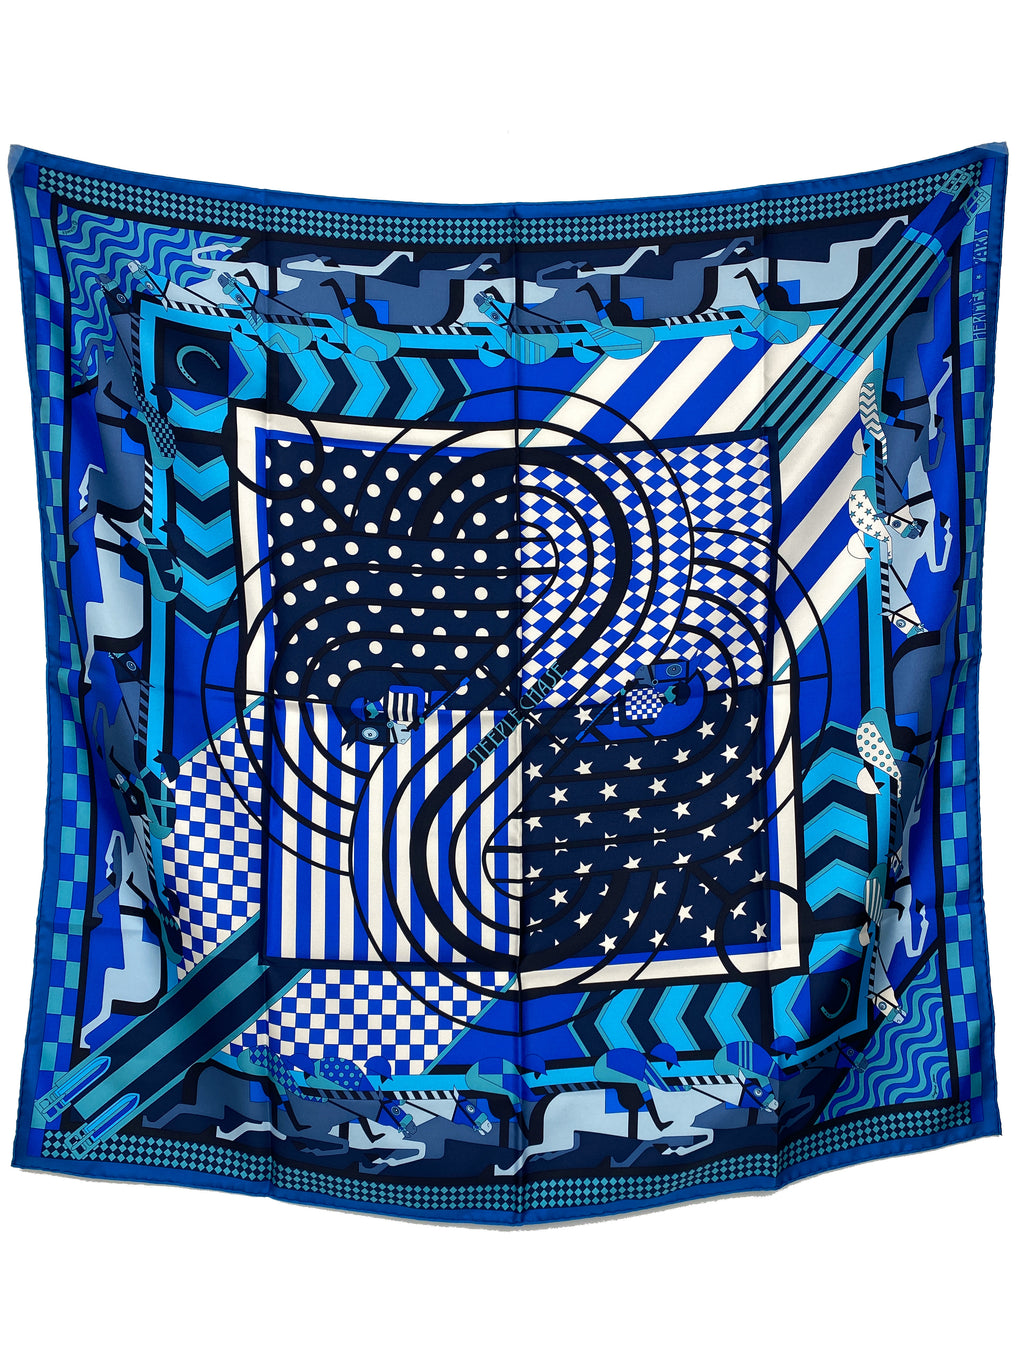 HERMÉS - STEEPLE CHASE SILK SCARF IN BLUE - 90 CM